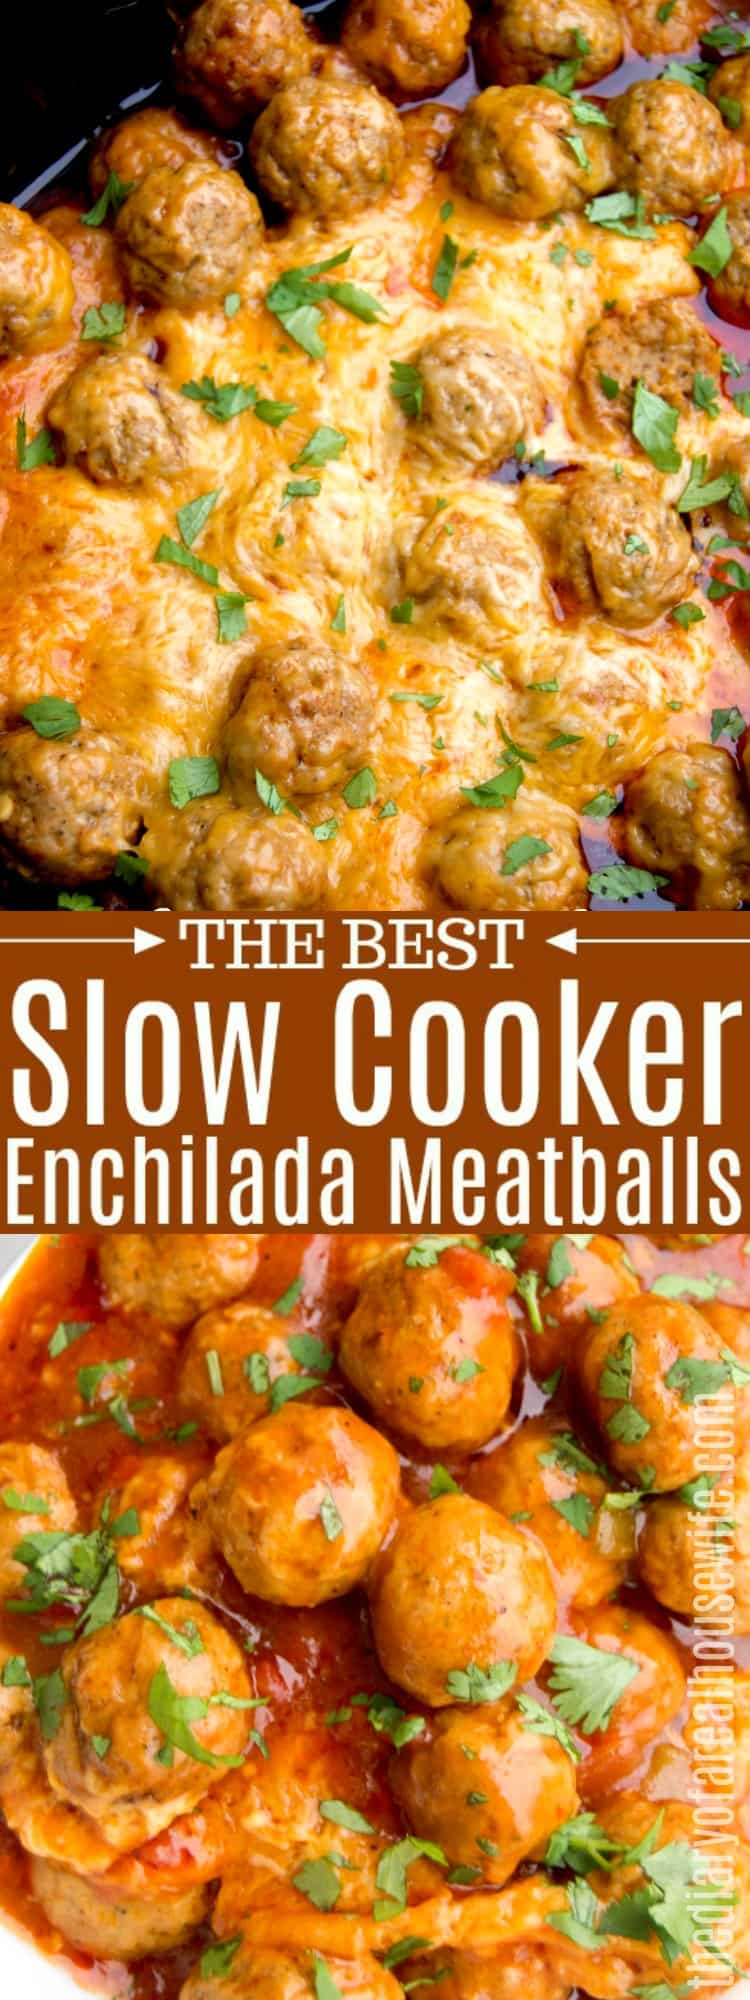 Slow Cooker Enchilada Meatballs